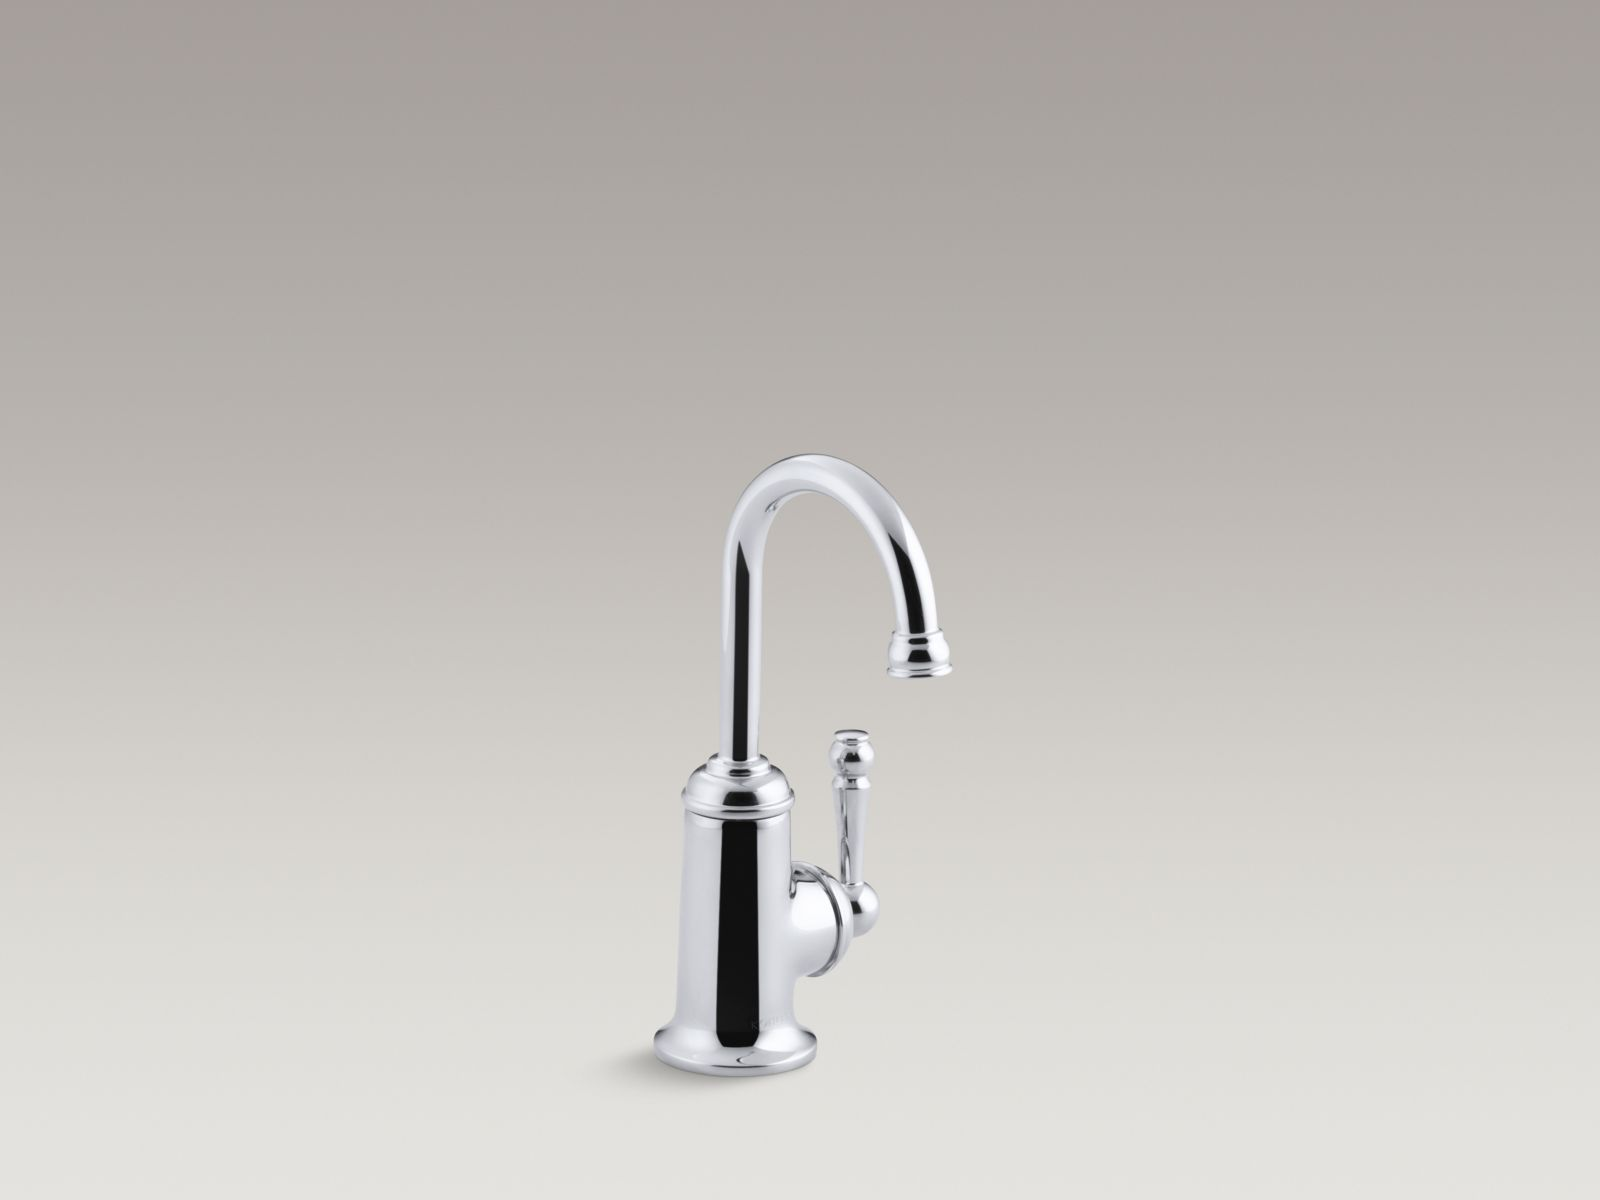 Kohler K-6666-CP Wellspring Beverage Faucet with Traditional Design Polished Chrome